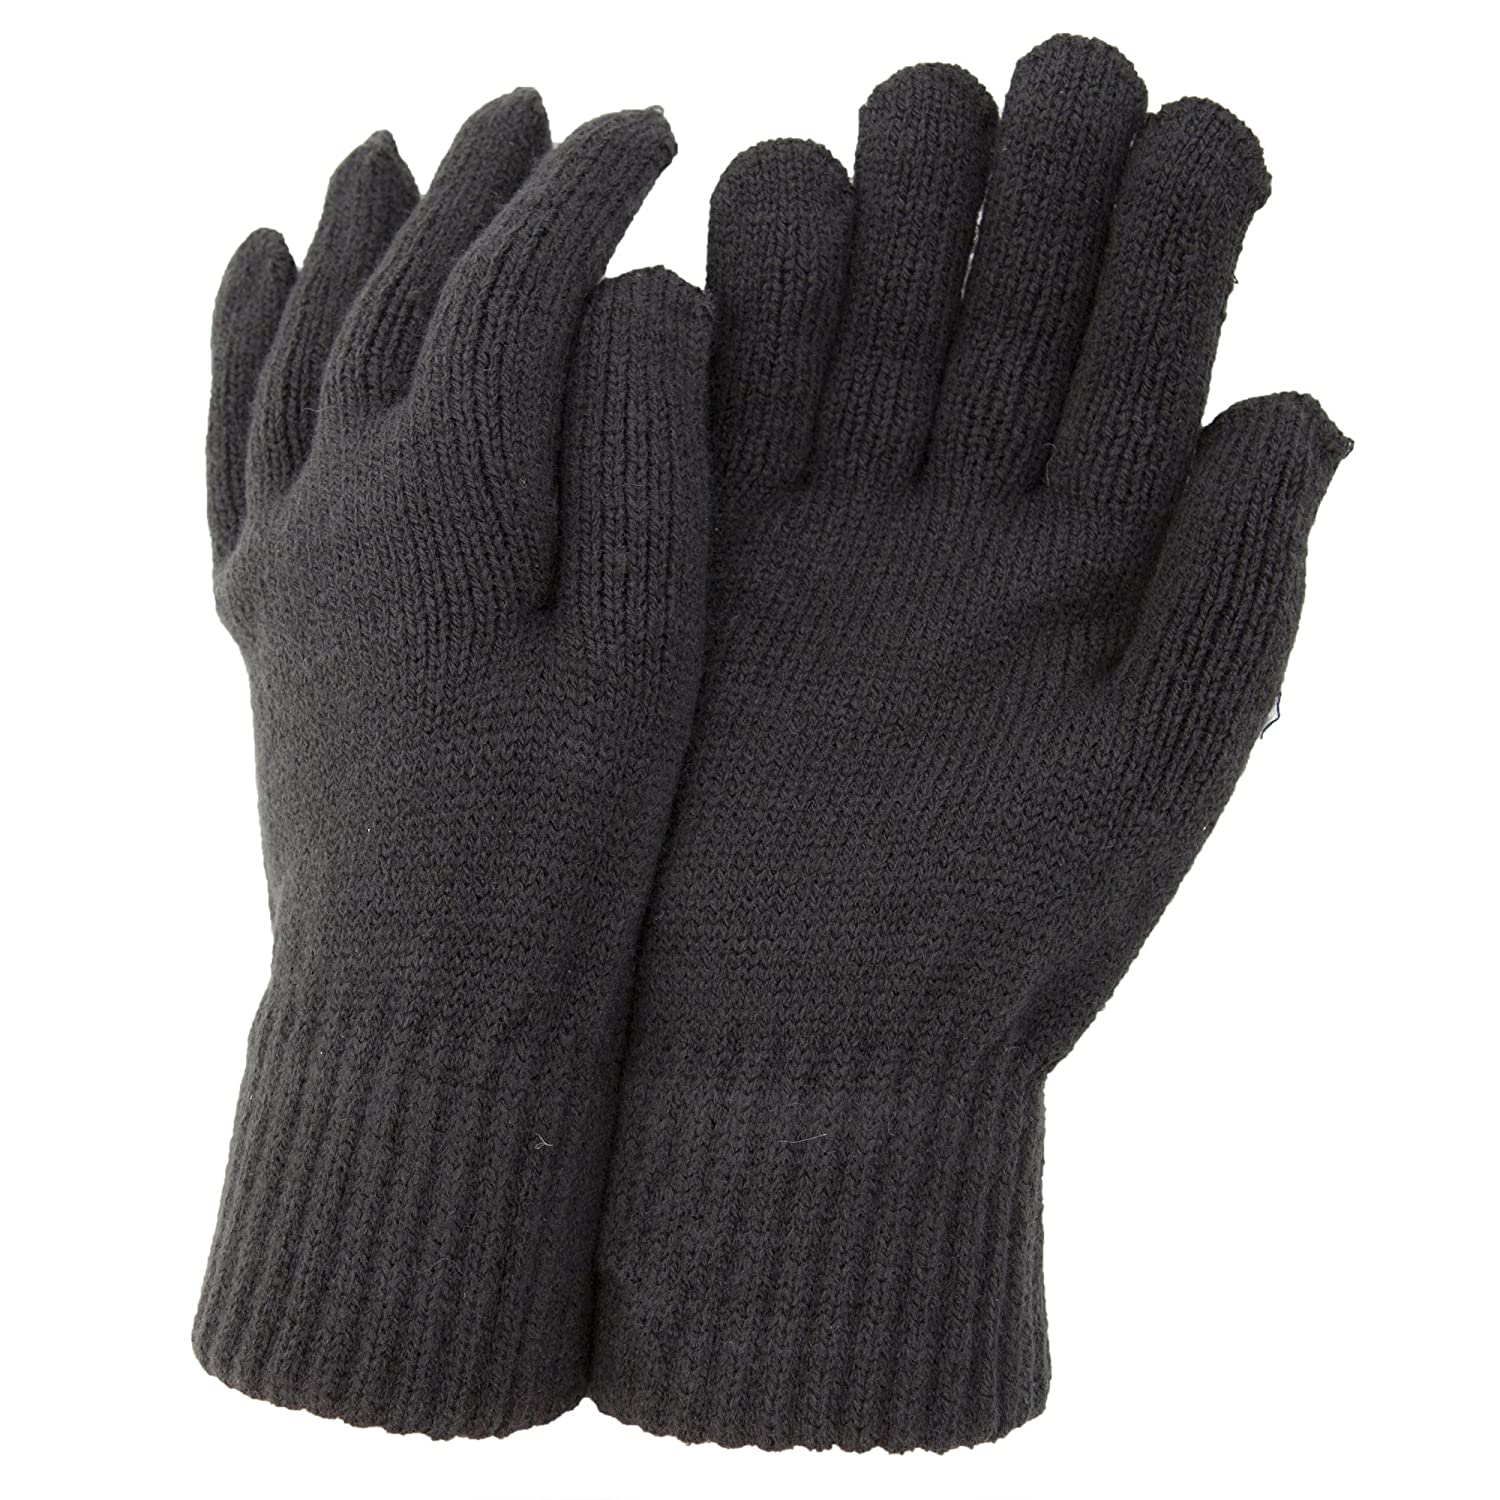 CLEARANCE - Mens Thermal Knitted Winter Gloves (One Size) (Grey) Universal Textiles UTGL348_5